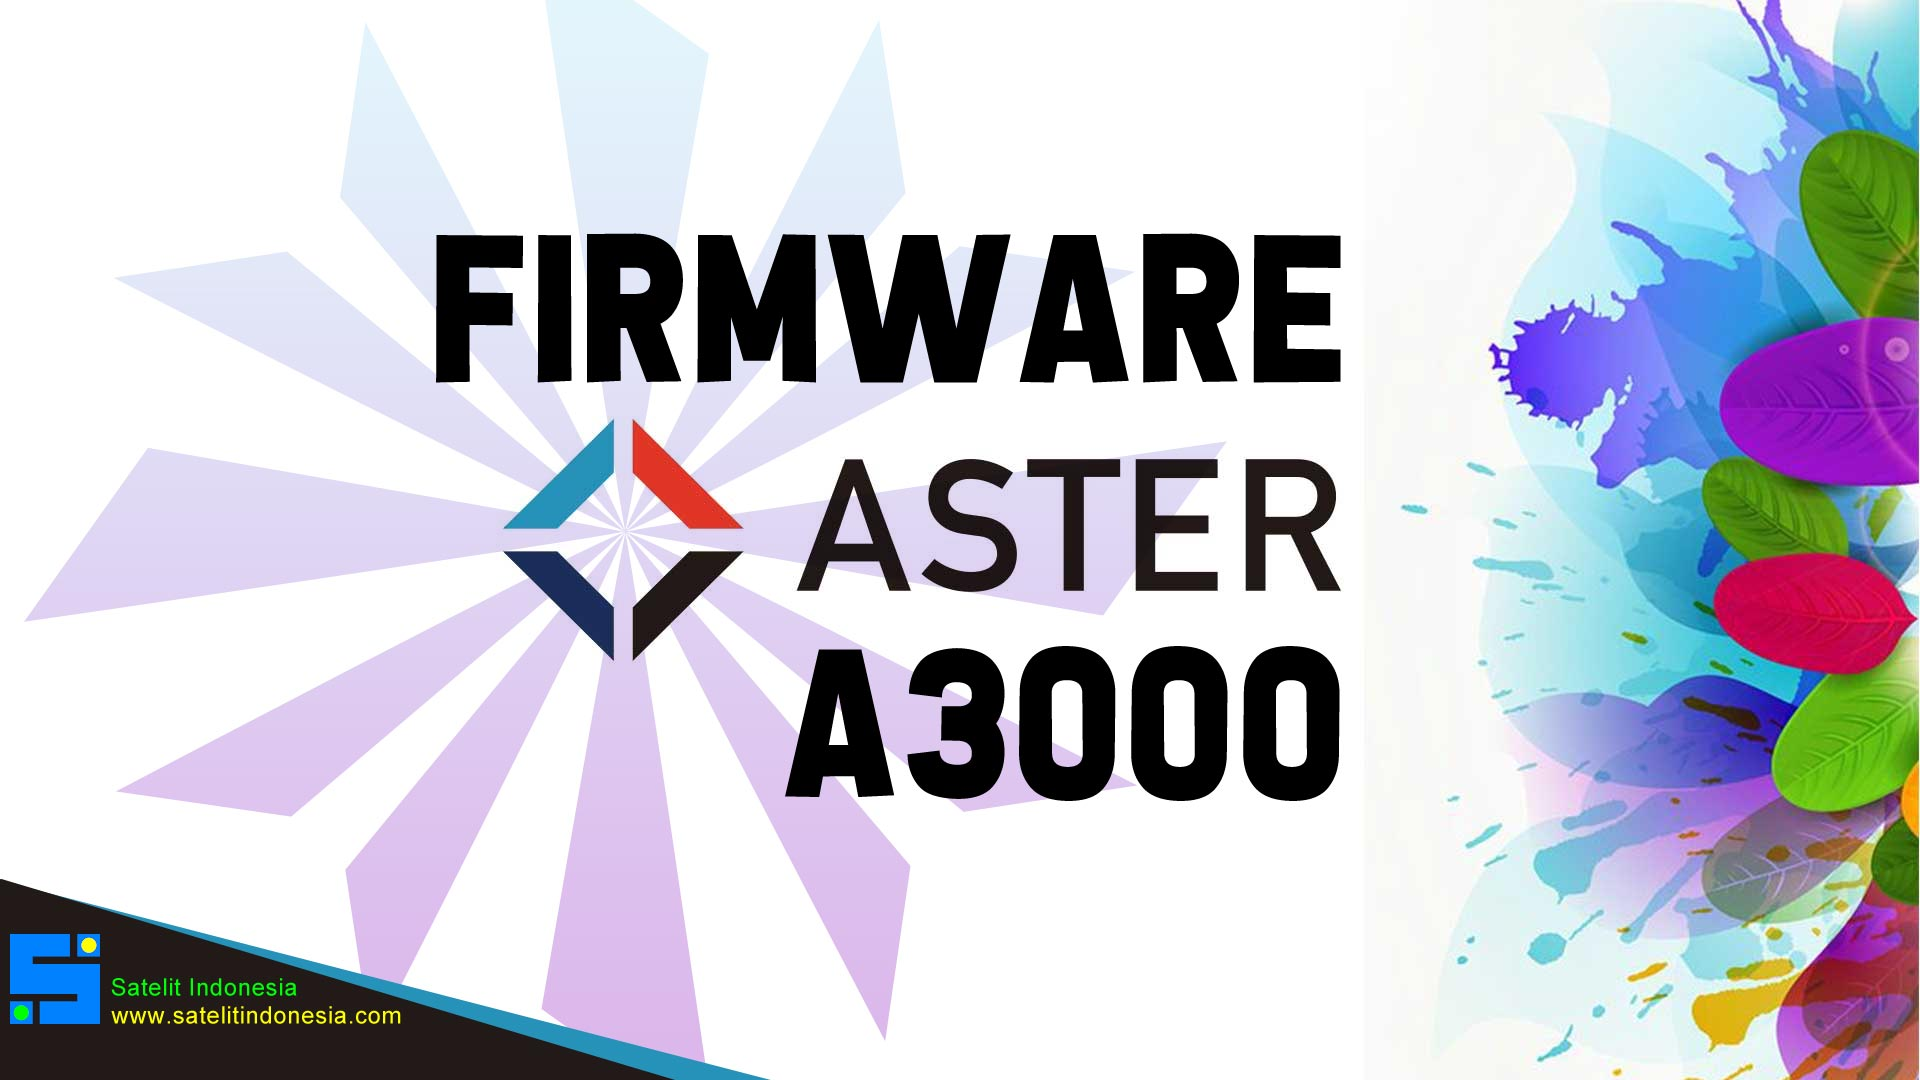 Download Software Aster A3000 New Update Firmware Receiver